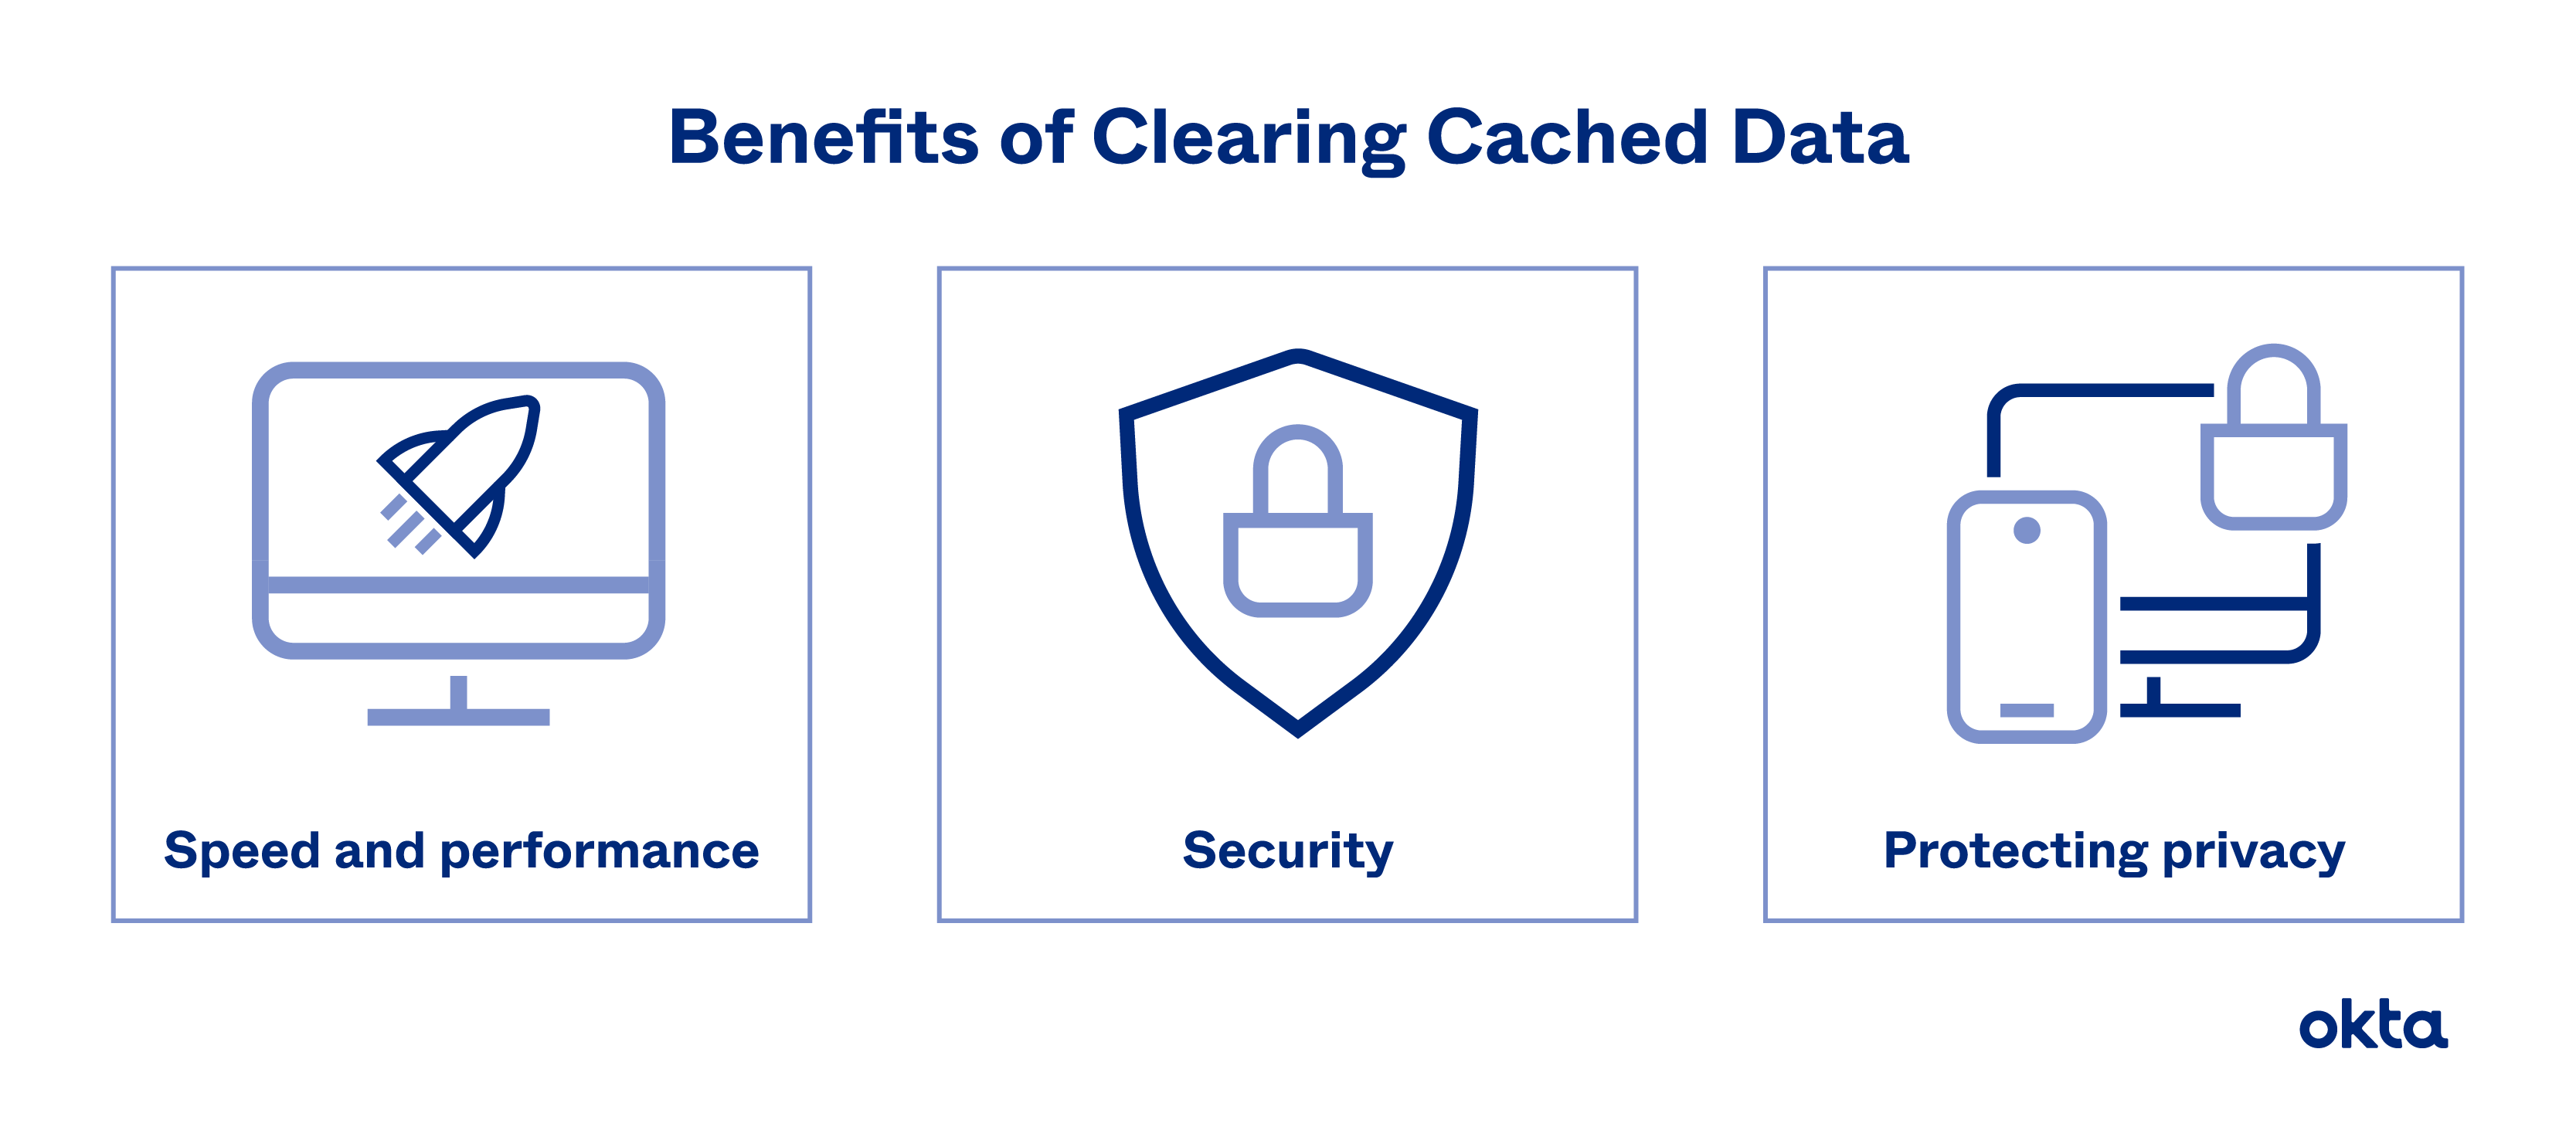 Benefits of Clearing Cached Data